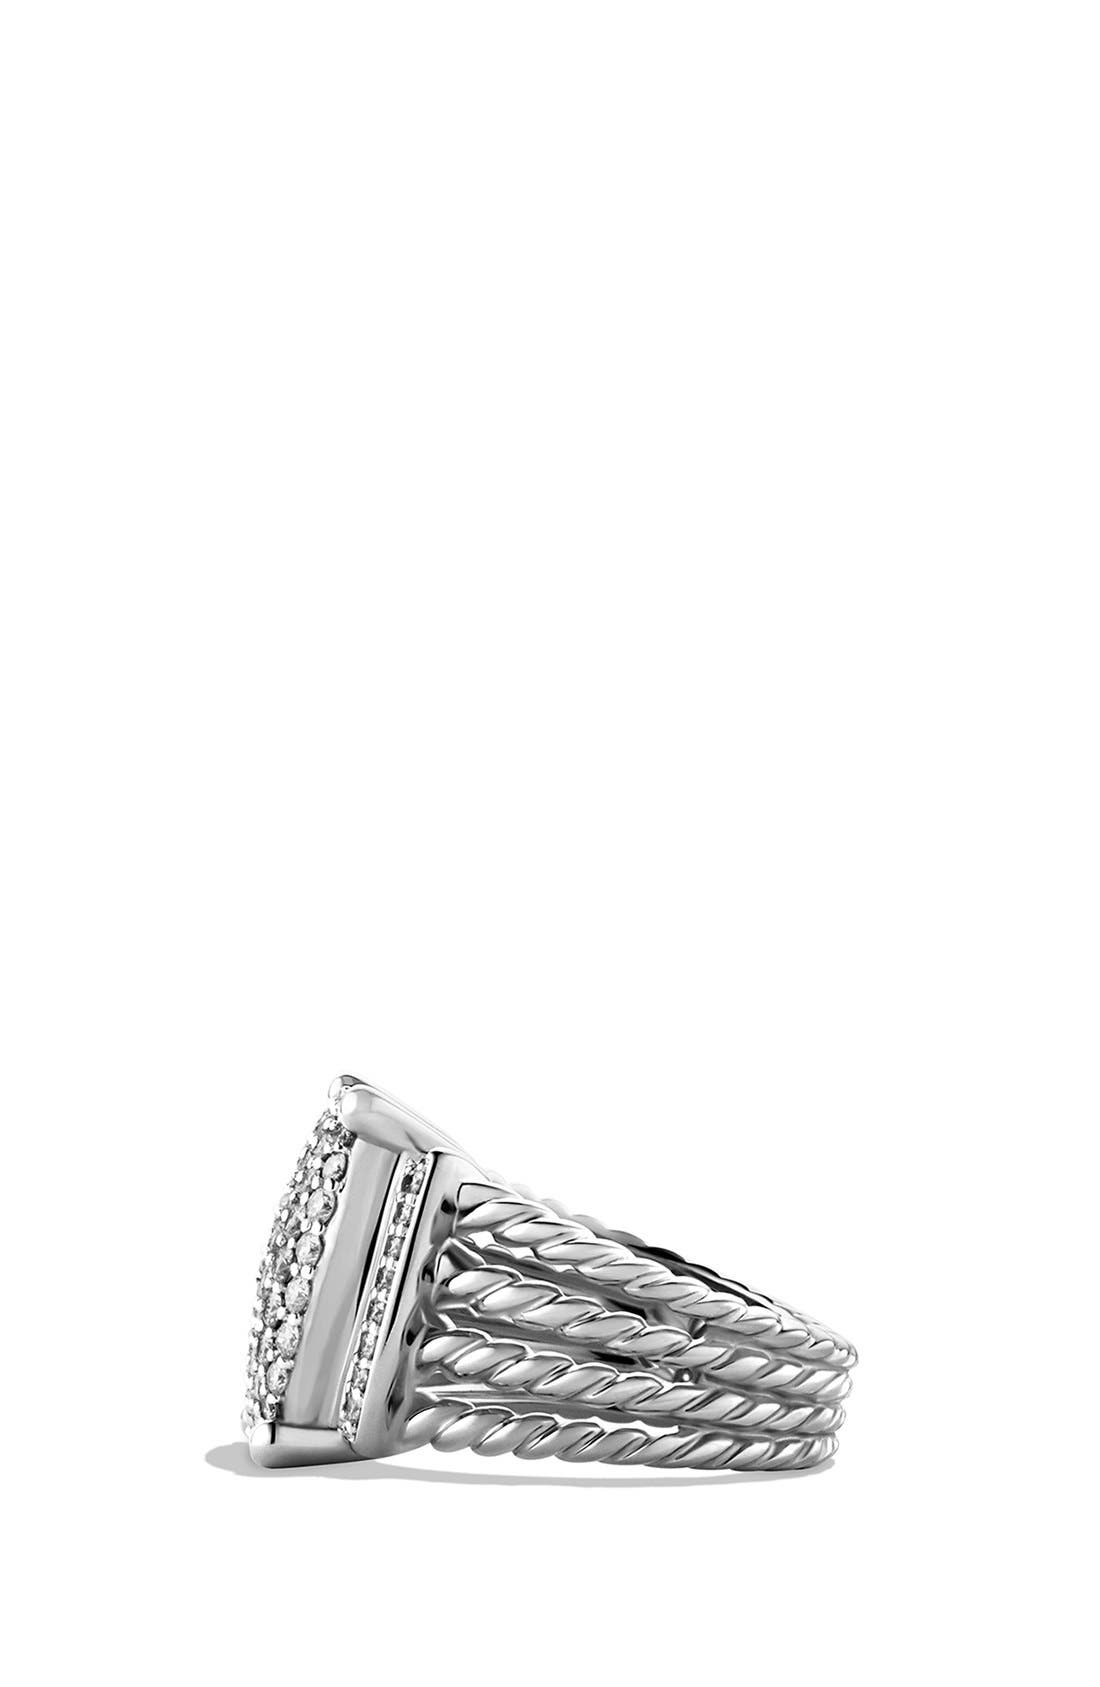 DAVID YURMAN,                             'Wheaton' Ring with Diamonds,                             Alternate thumbnail 2, color,                             DIAMOND